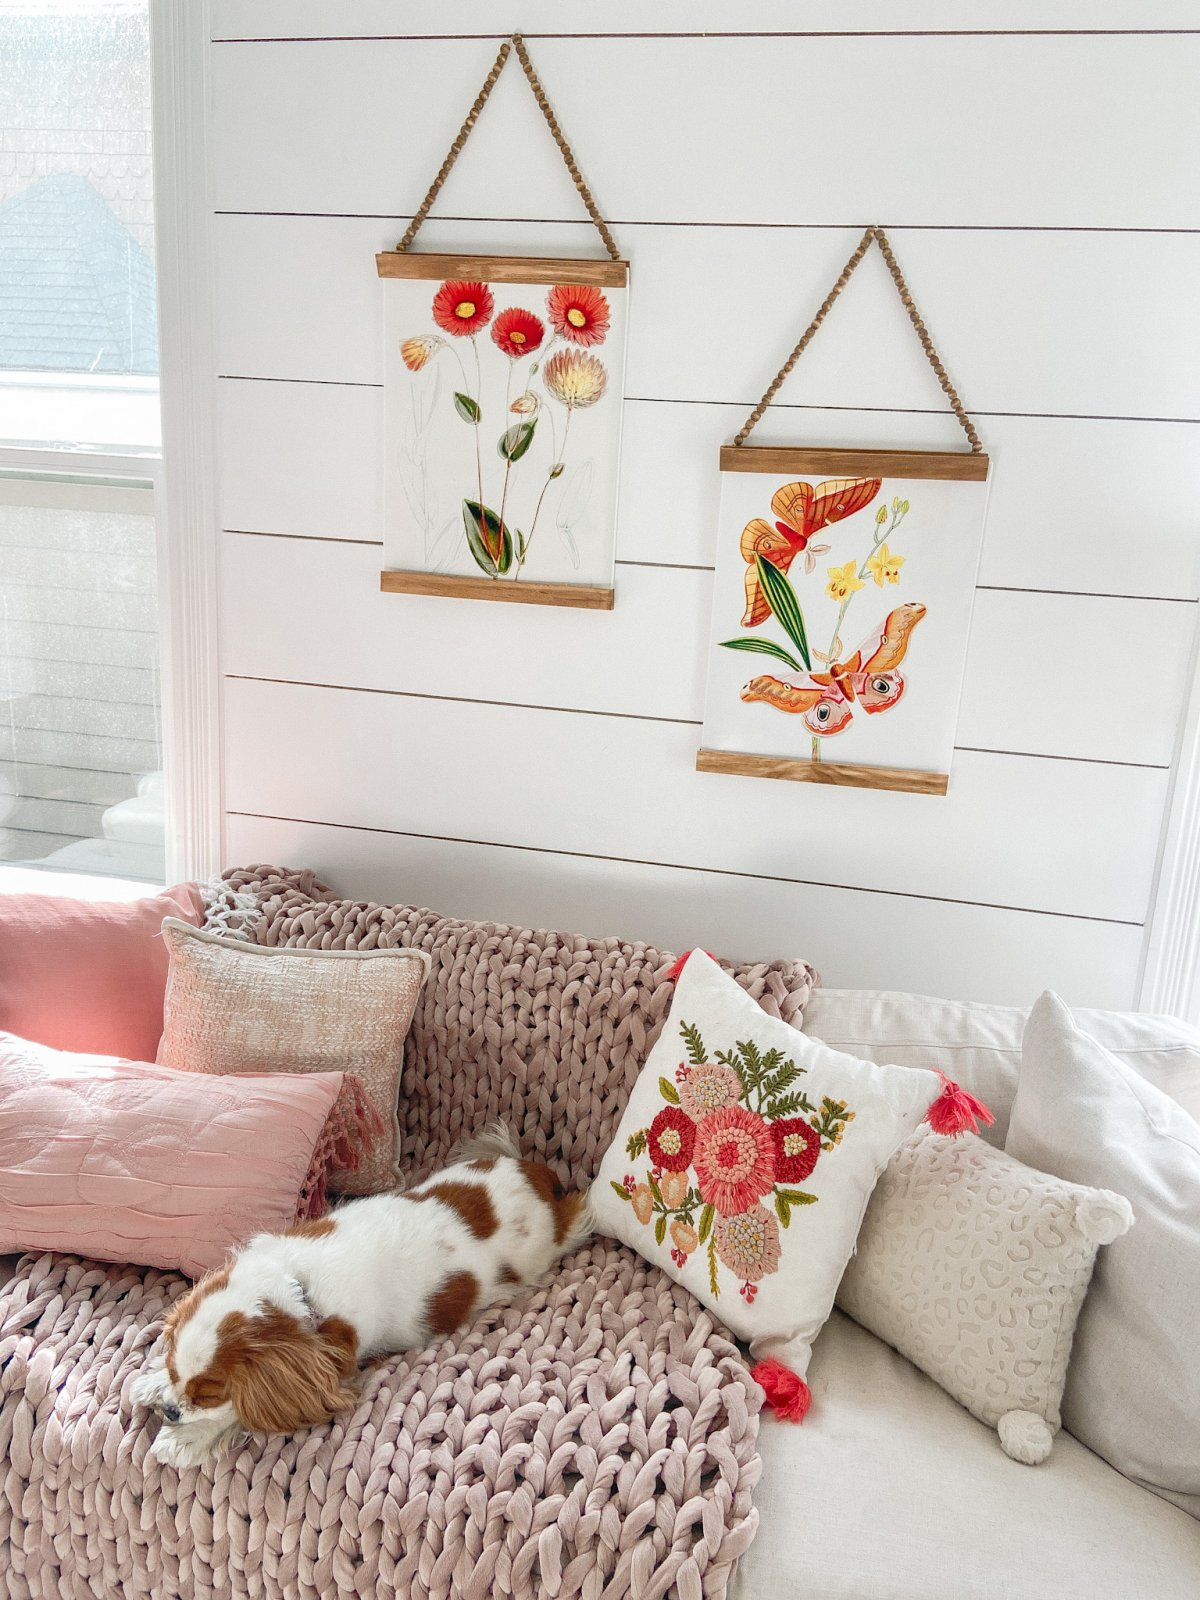 Spring Botanical Prints with DIY Beaded Hangers. Bring a little spring color into your home and make beaded hangers for less than $5!